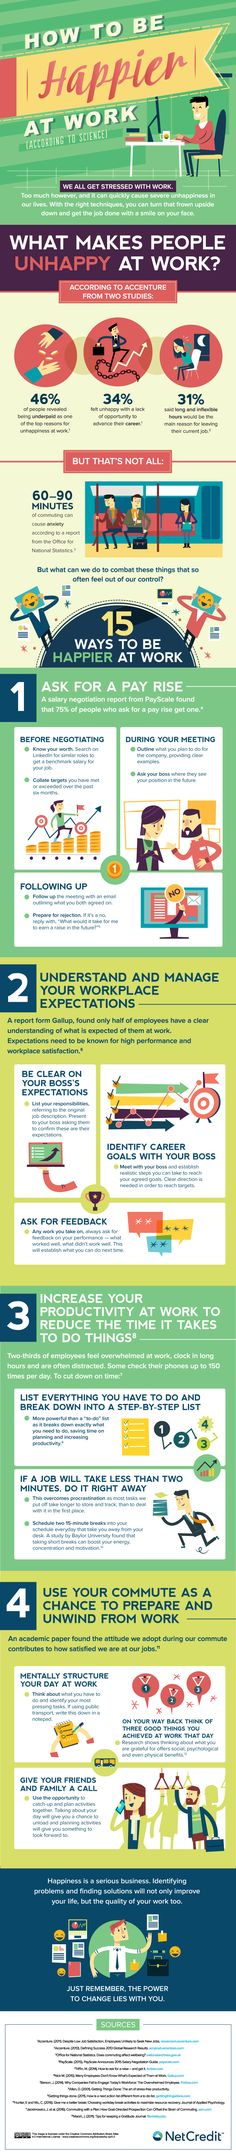 How to be Happier at Work (according to science) - Job satisfaction is a rare and beautiful thing. You spend half your life in the workplace, yet you can feel underpaid, undervalued and overworked. What can you do to get your job working for you? Unhappy At Work, Happy Employees, Tips To Be Happy, Job Satisfaction, Ways To Be Happier, Job Work, Science, Employee Engagement, Work Quotes